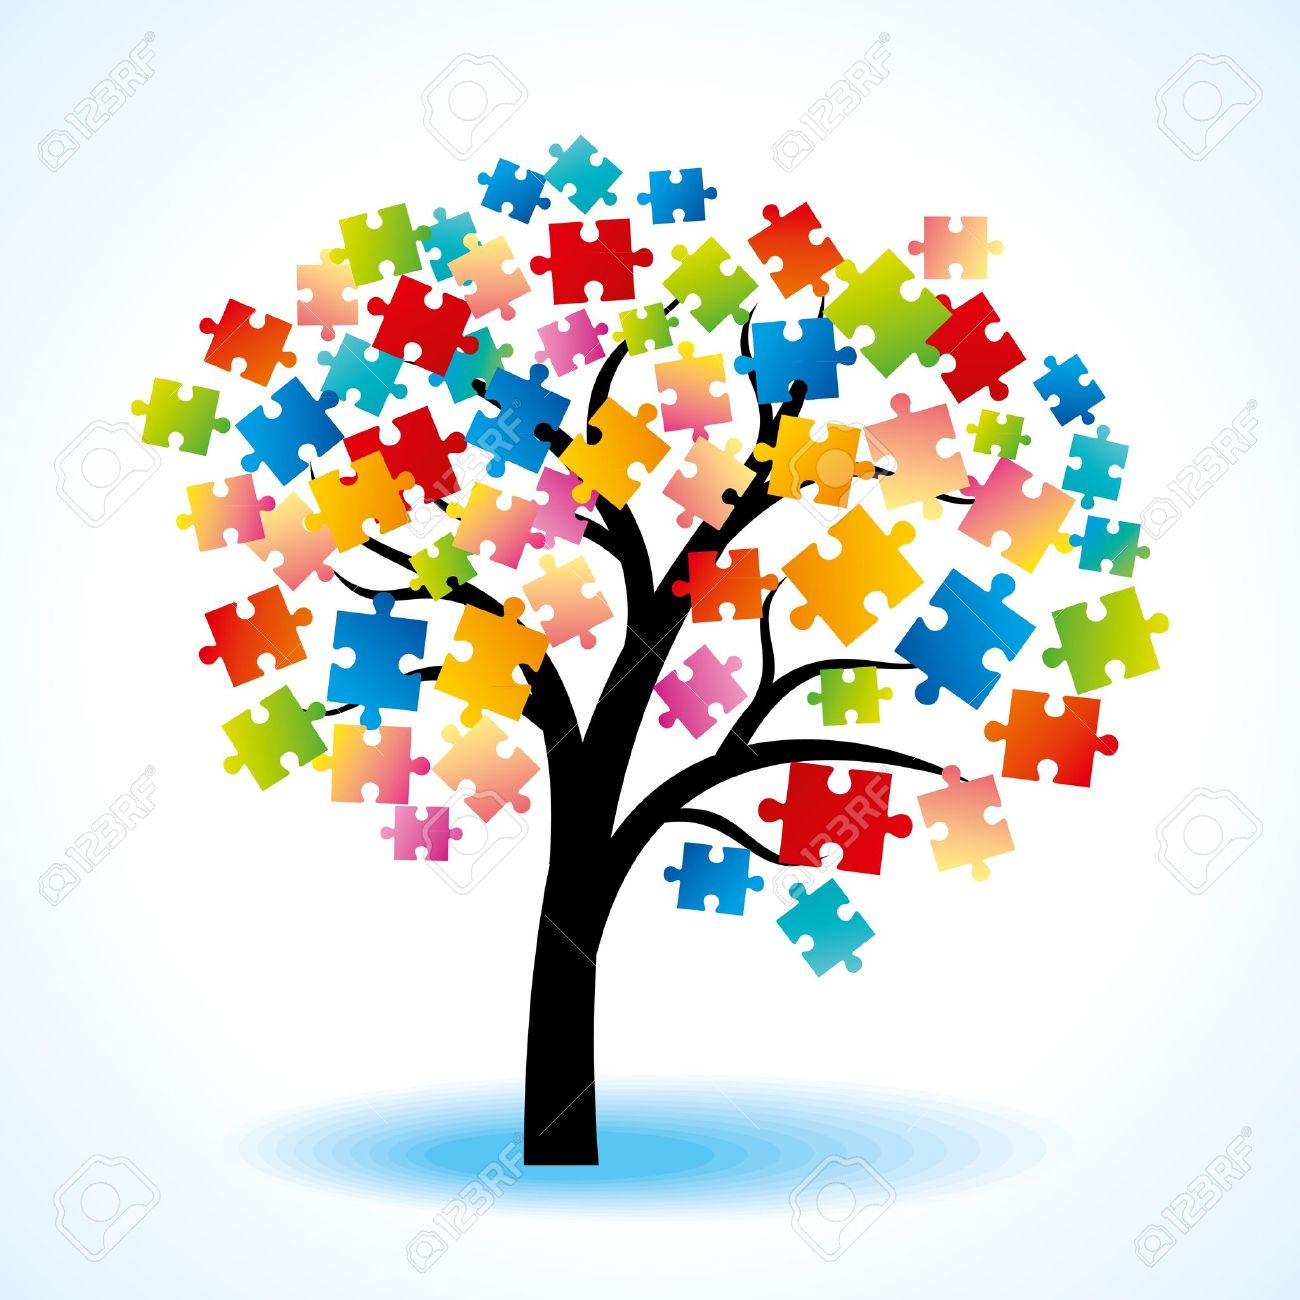 Abstract Tree Puzzle Colorful Background Stock Vector